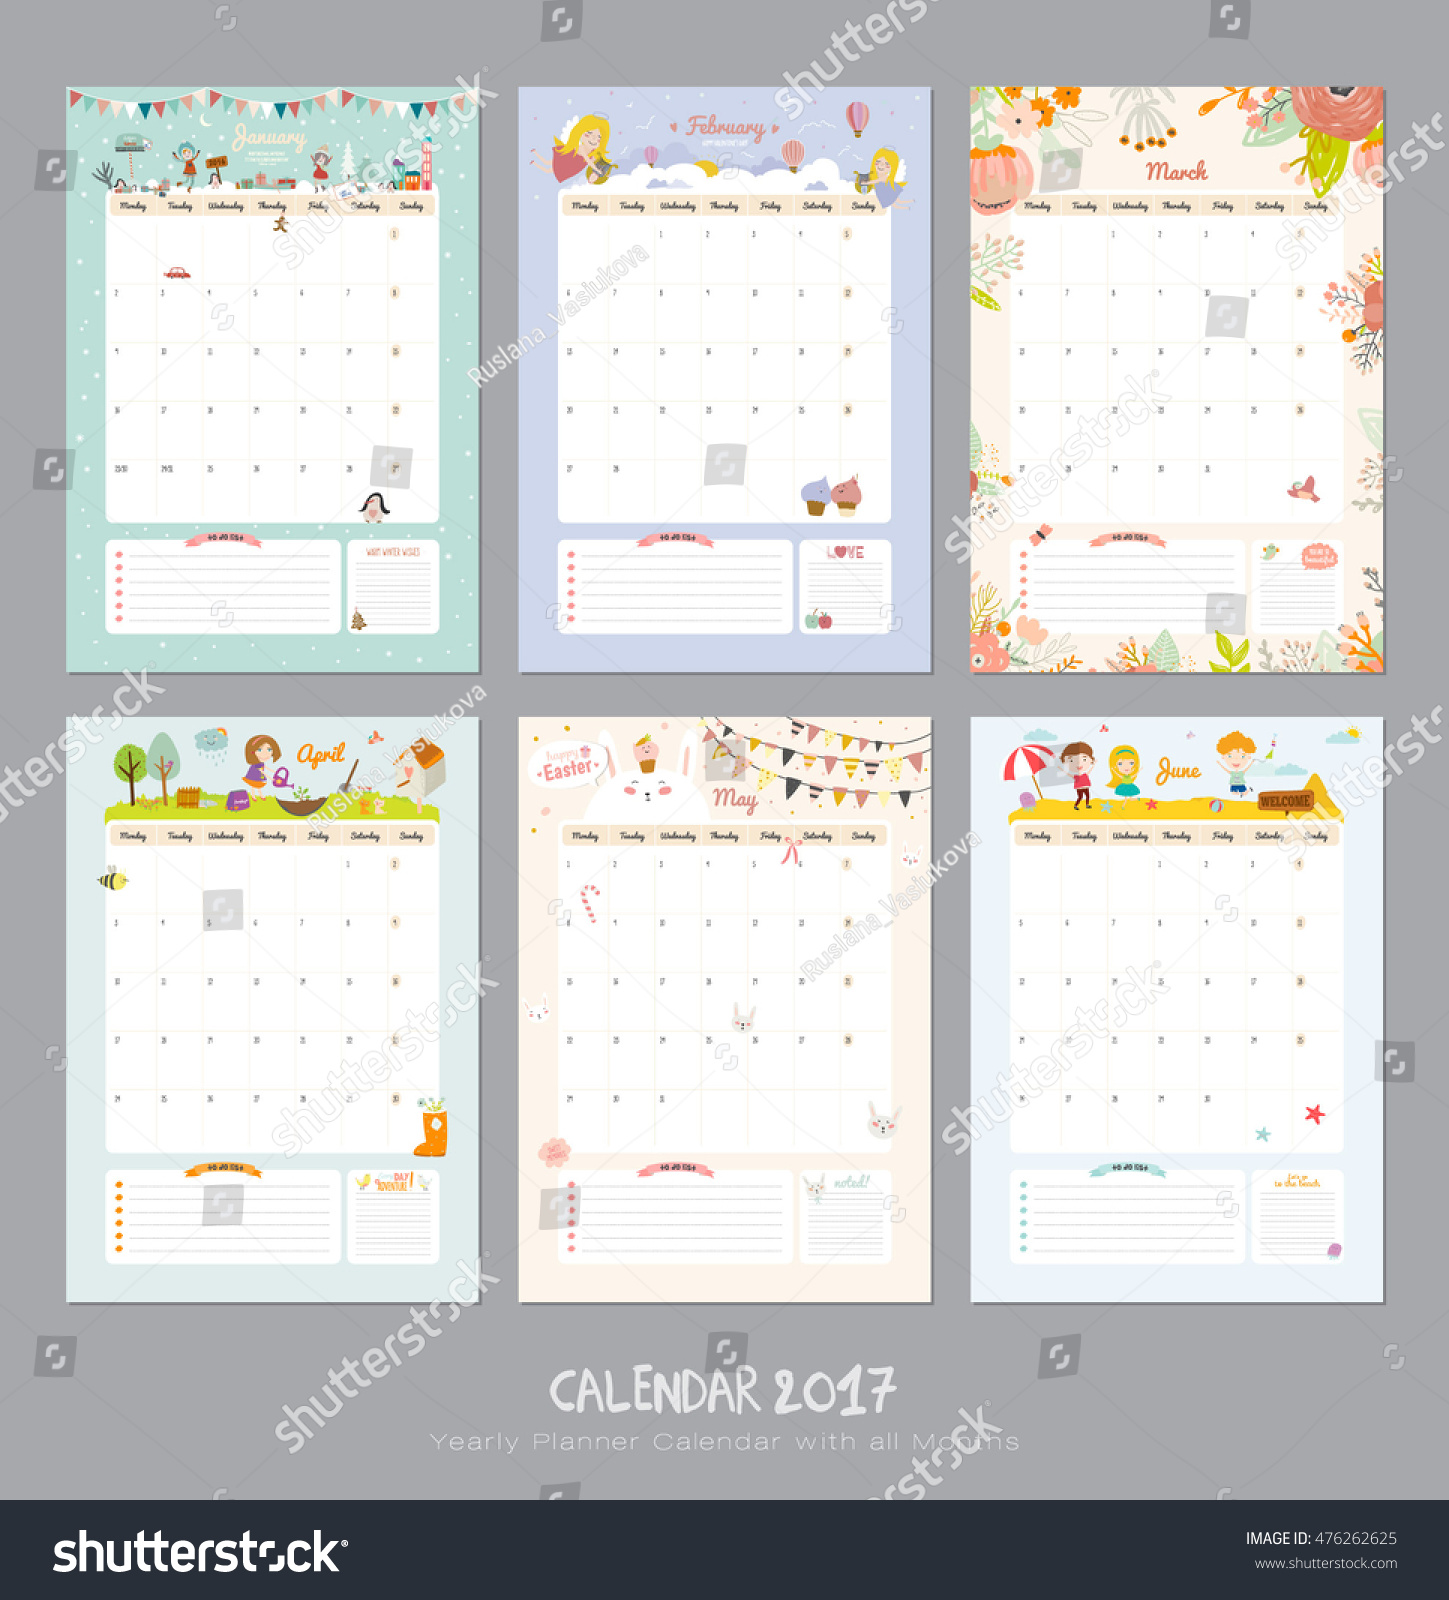 Calendar For Organization : Cute calendar template yearly planner stock vector